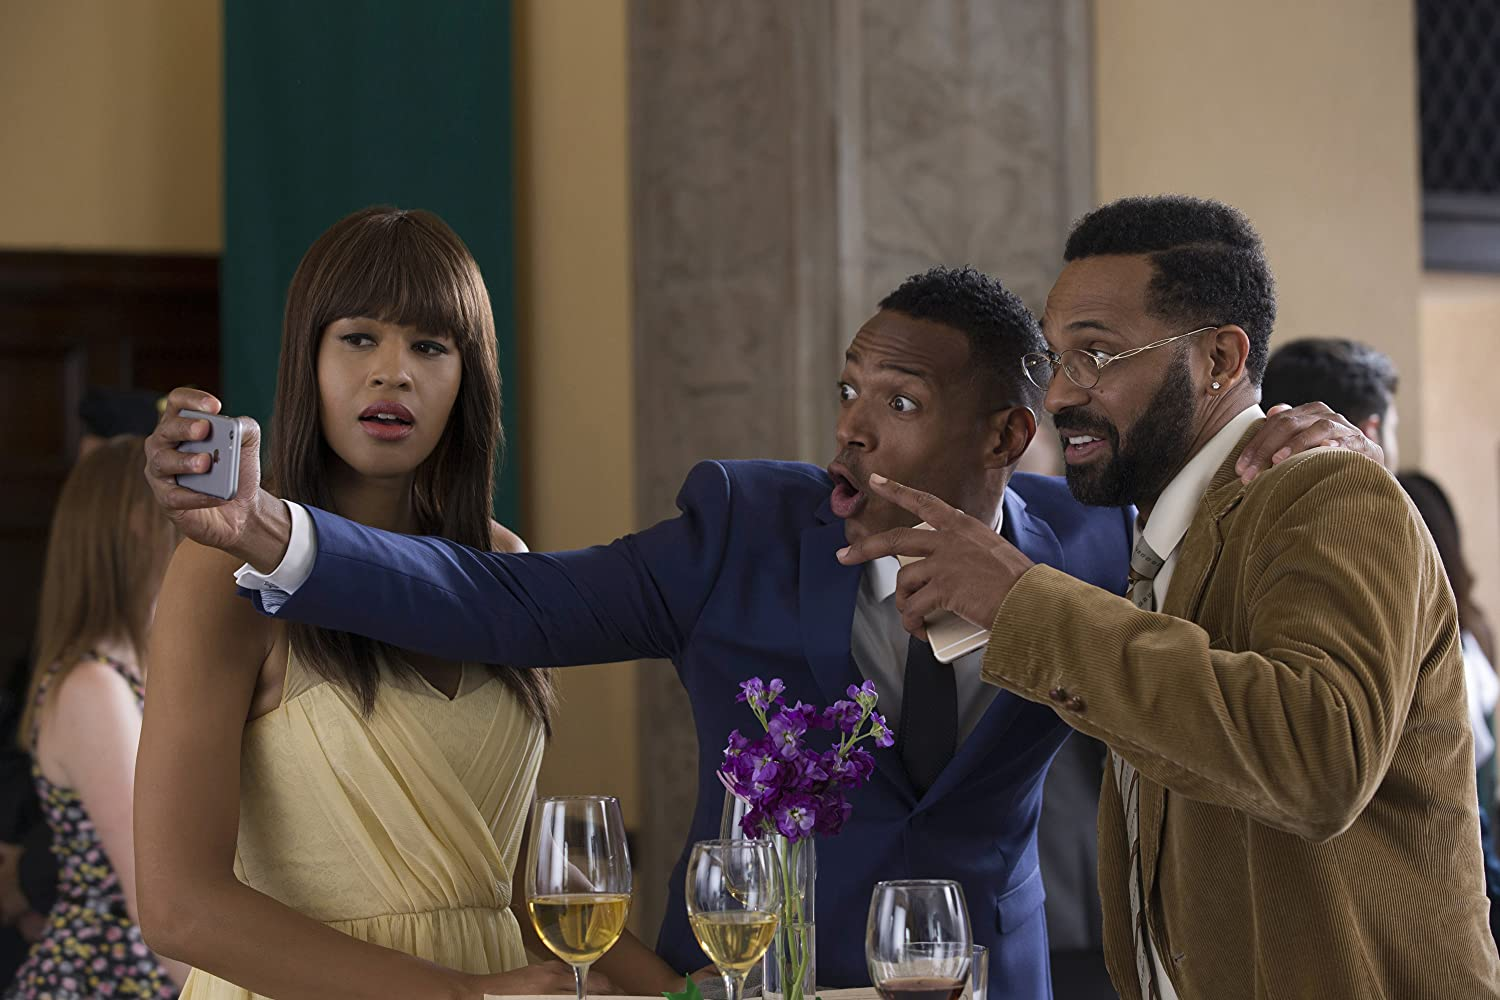 Marlon Wayans, Mike Epps, and Kali Hawk in Fifty Shades of Black (2016)